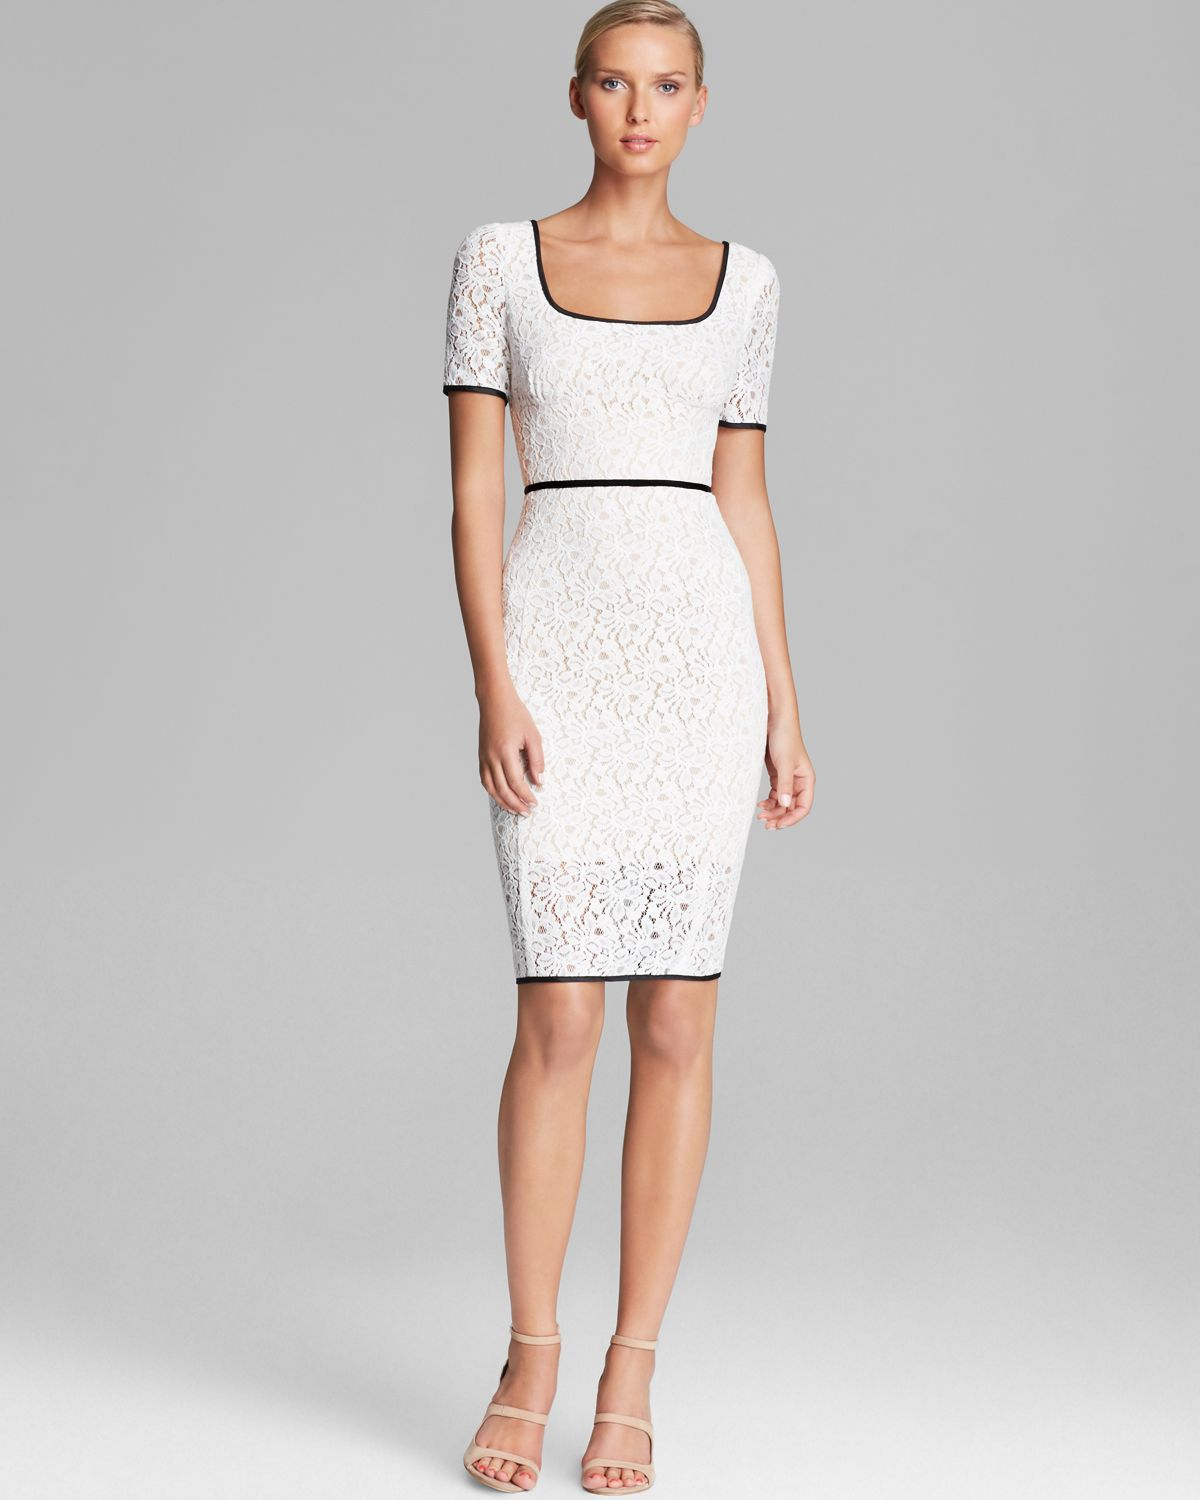 Precious Abs By Allen Schwartz Dress Square Neck Short Sleeve Lace Sheath Mini Dresses Product 1 20962383 0 596153011 Normal Square Neck Dress Uk Square Neck Dress Boohoo wedding dress Square Neck Dress